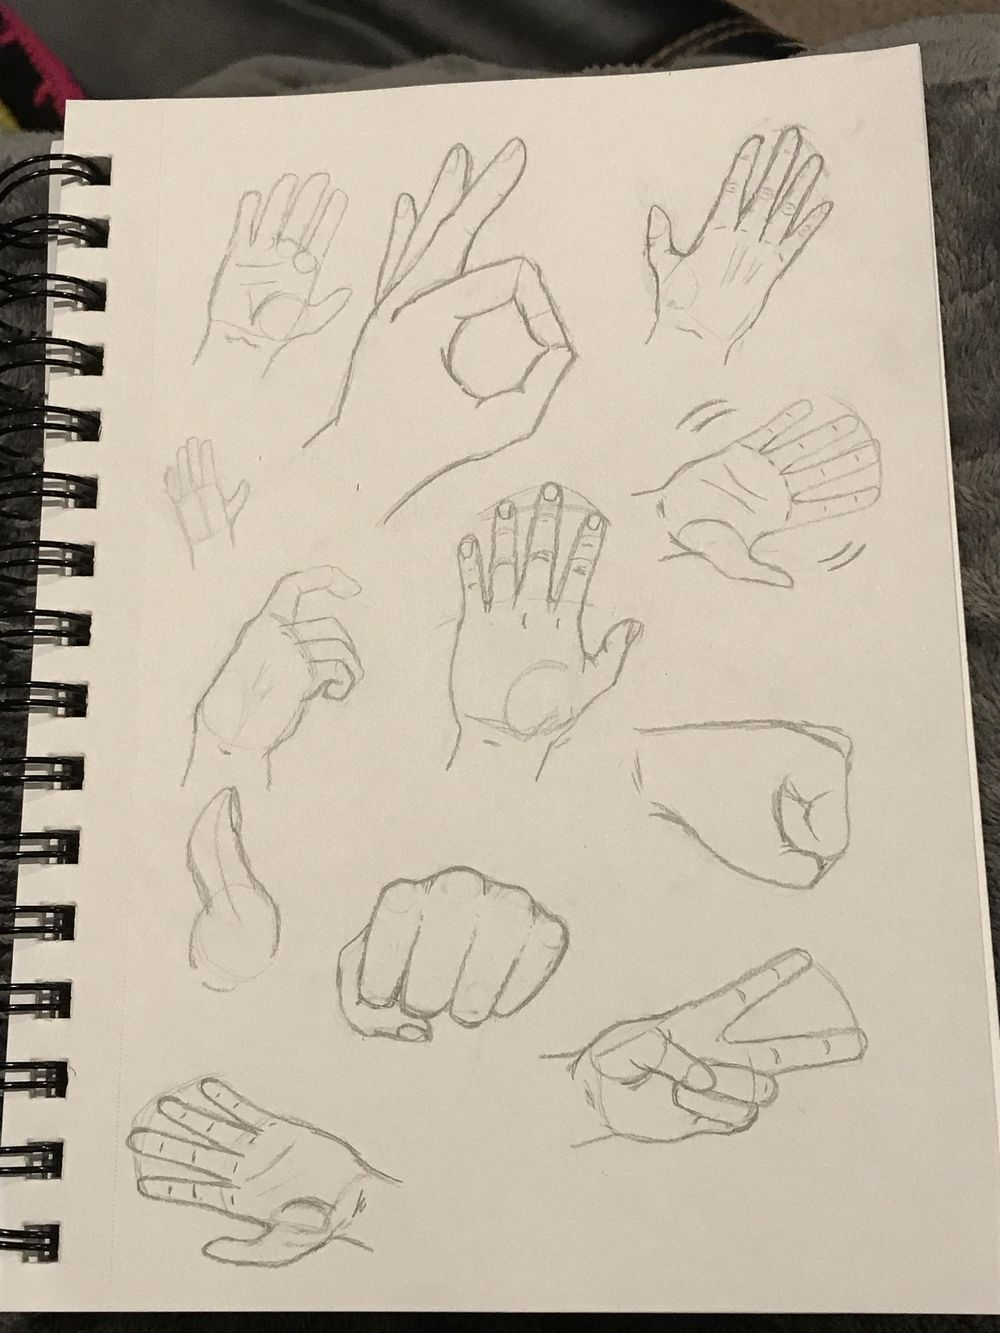 Hands P1 - image 1 - student project